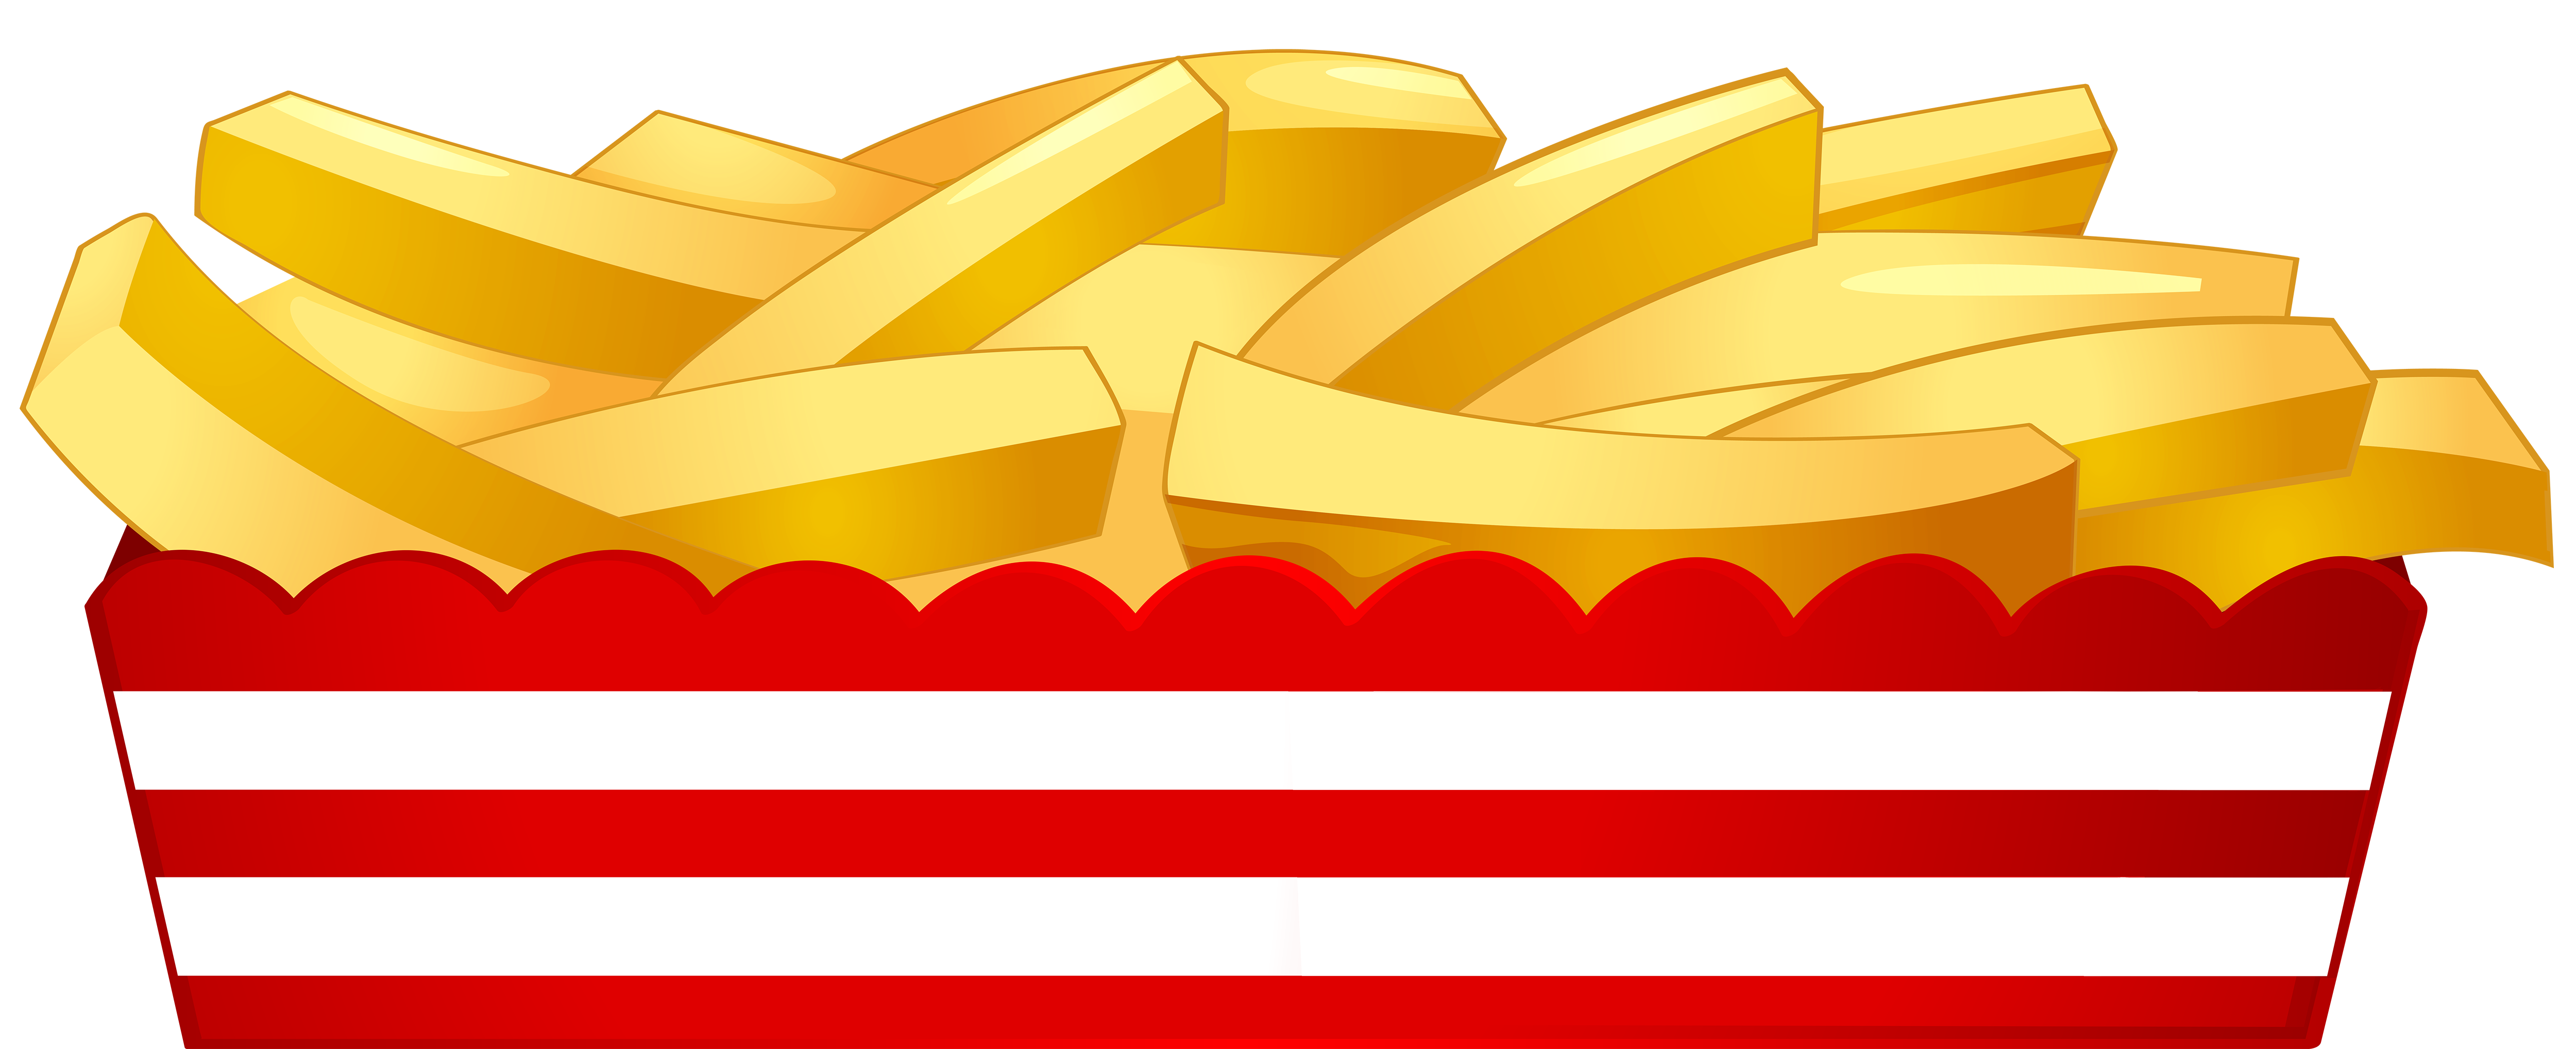 Fries clipart. French fast food png